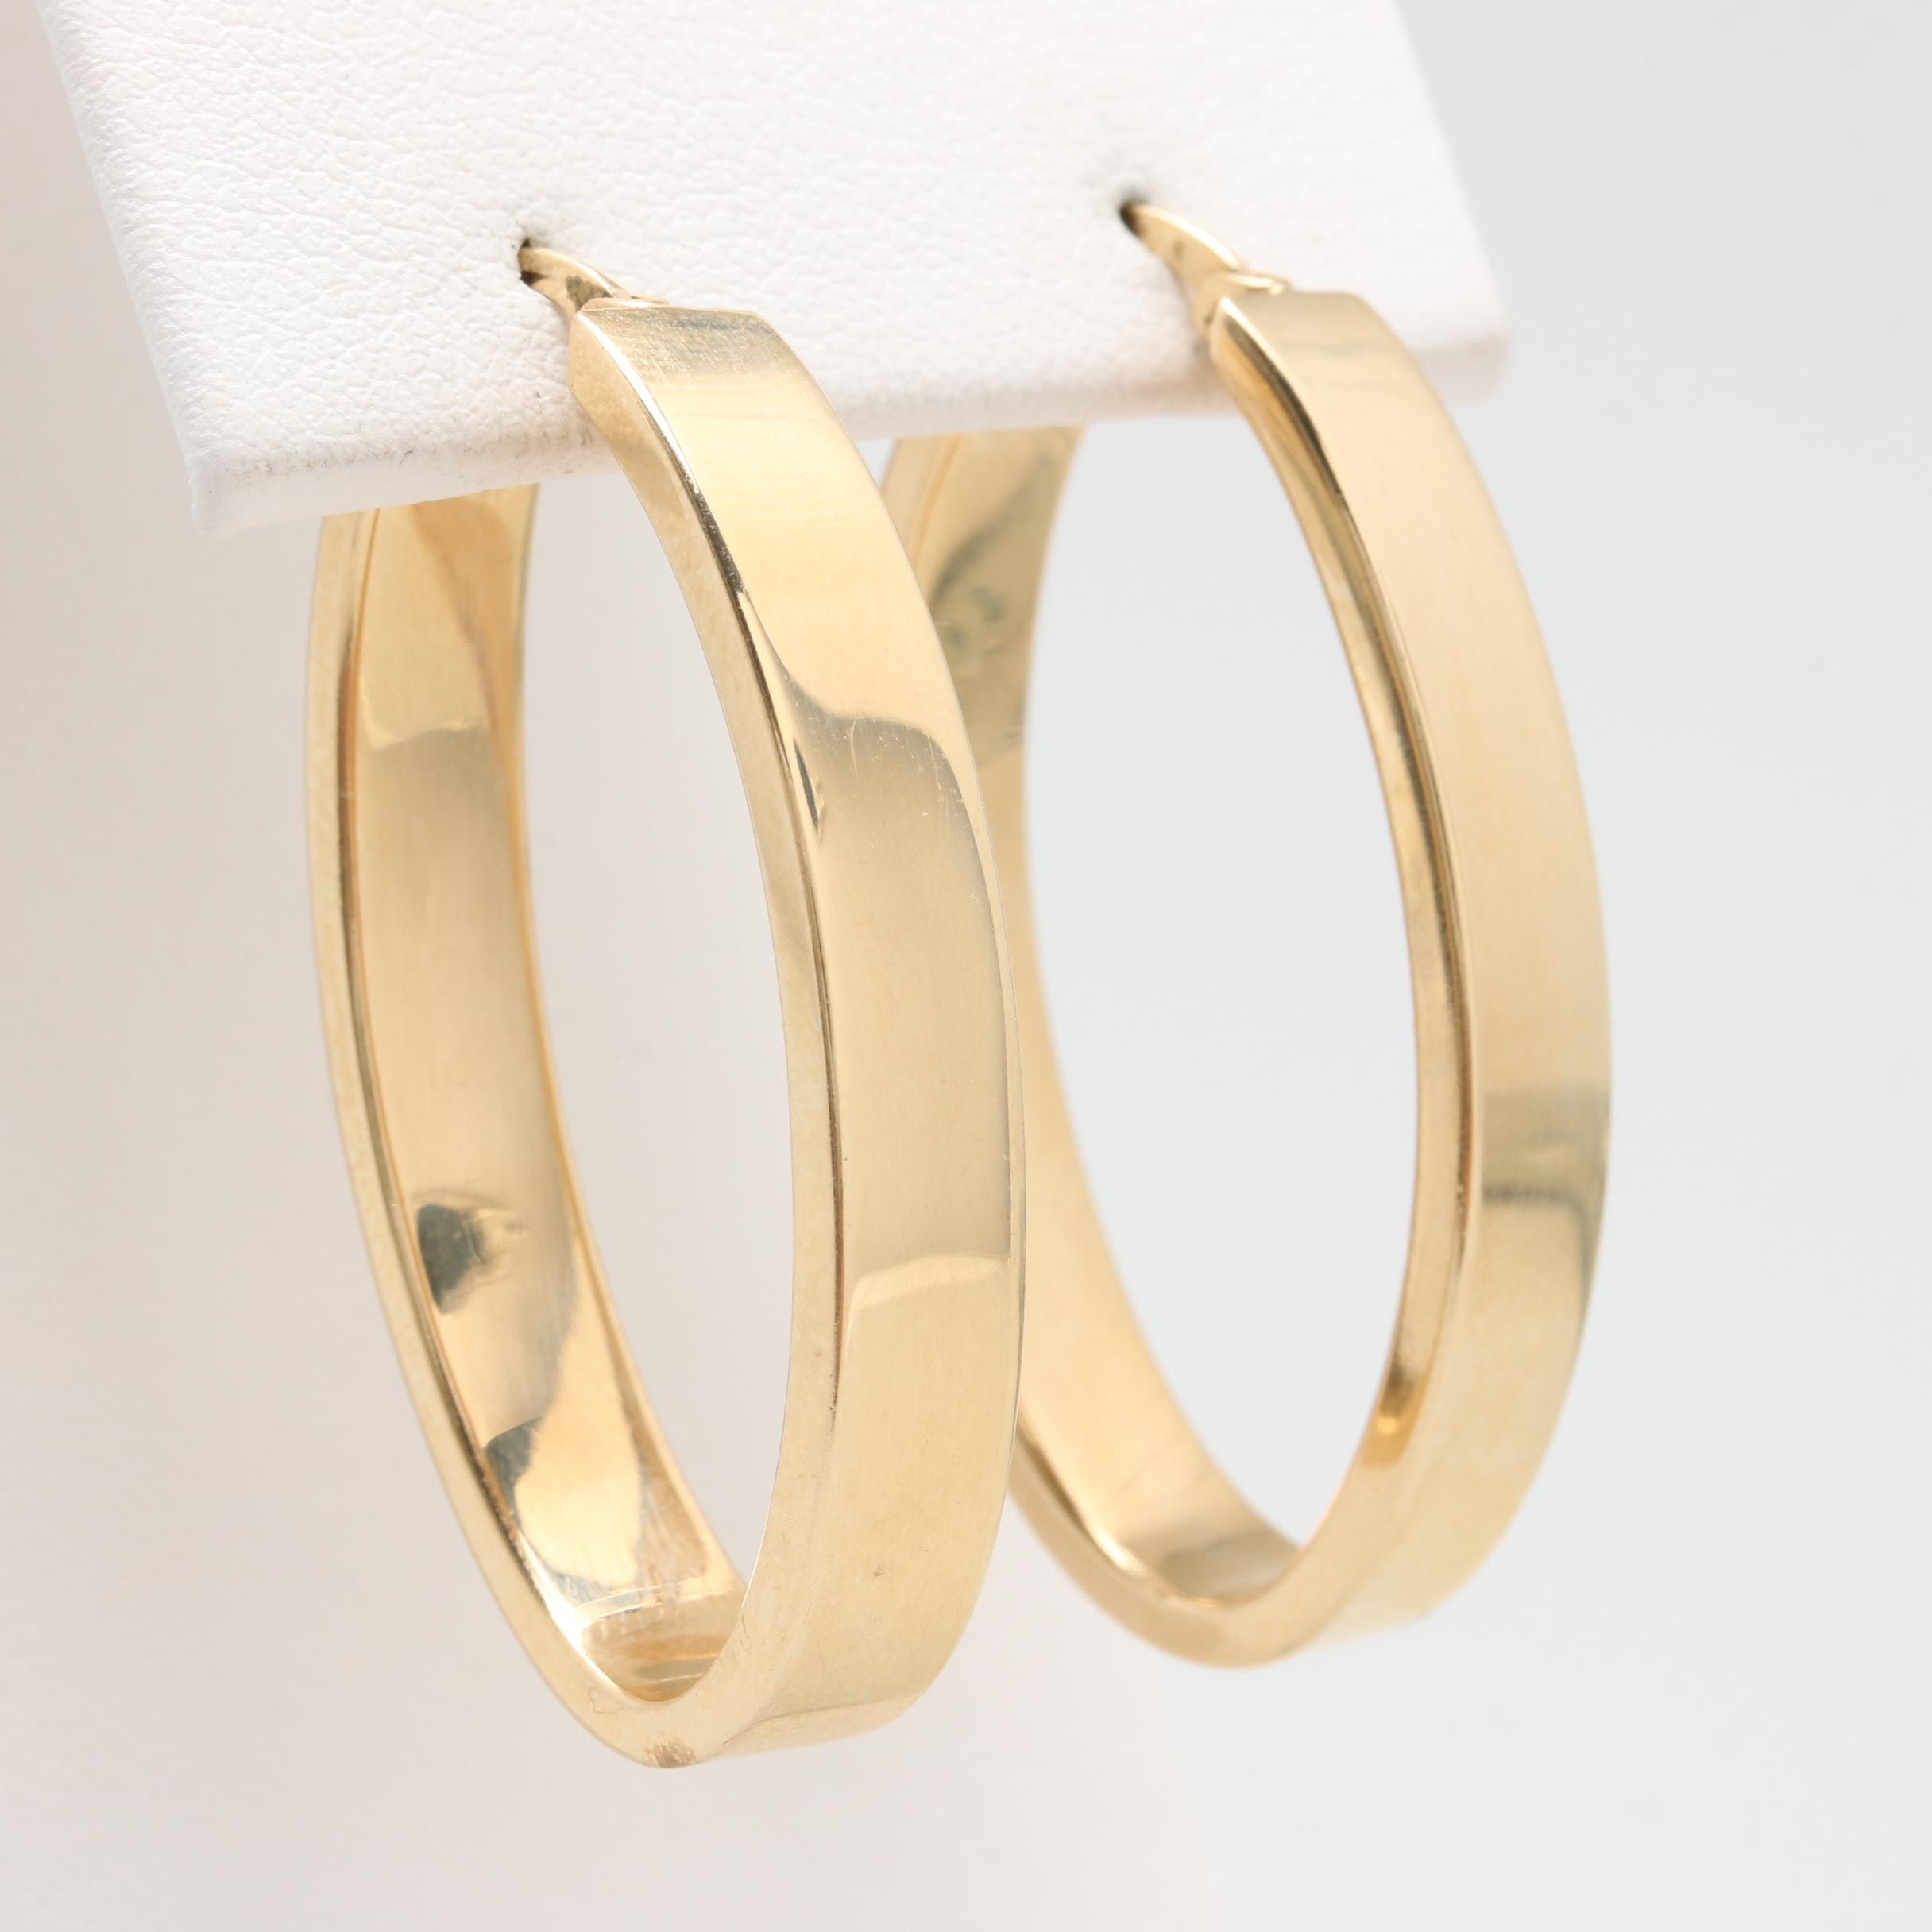 14K Yellow Gold Oval Hoops